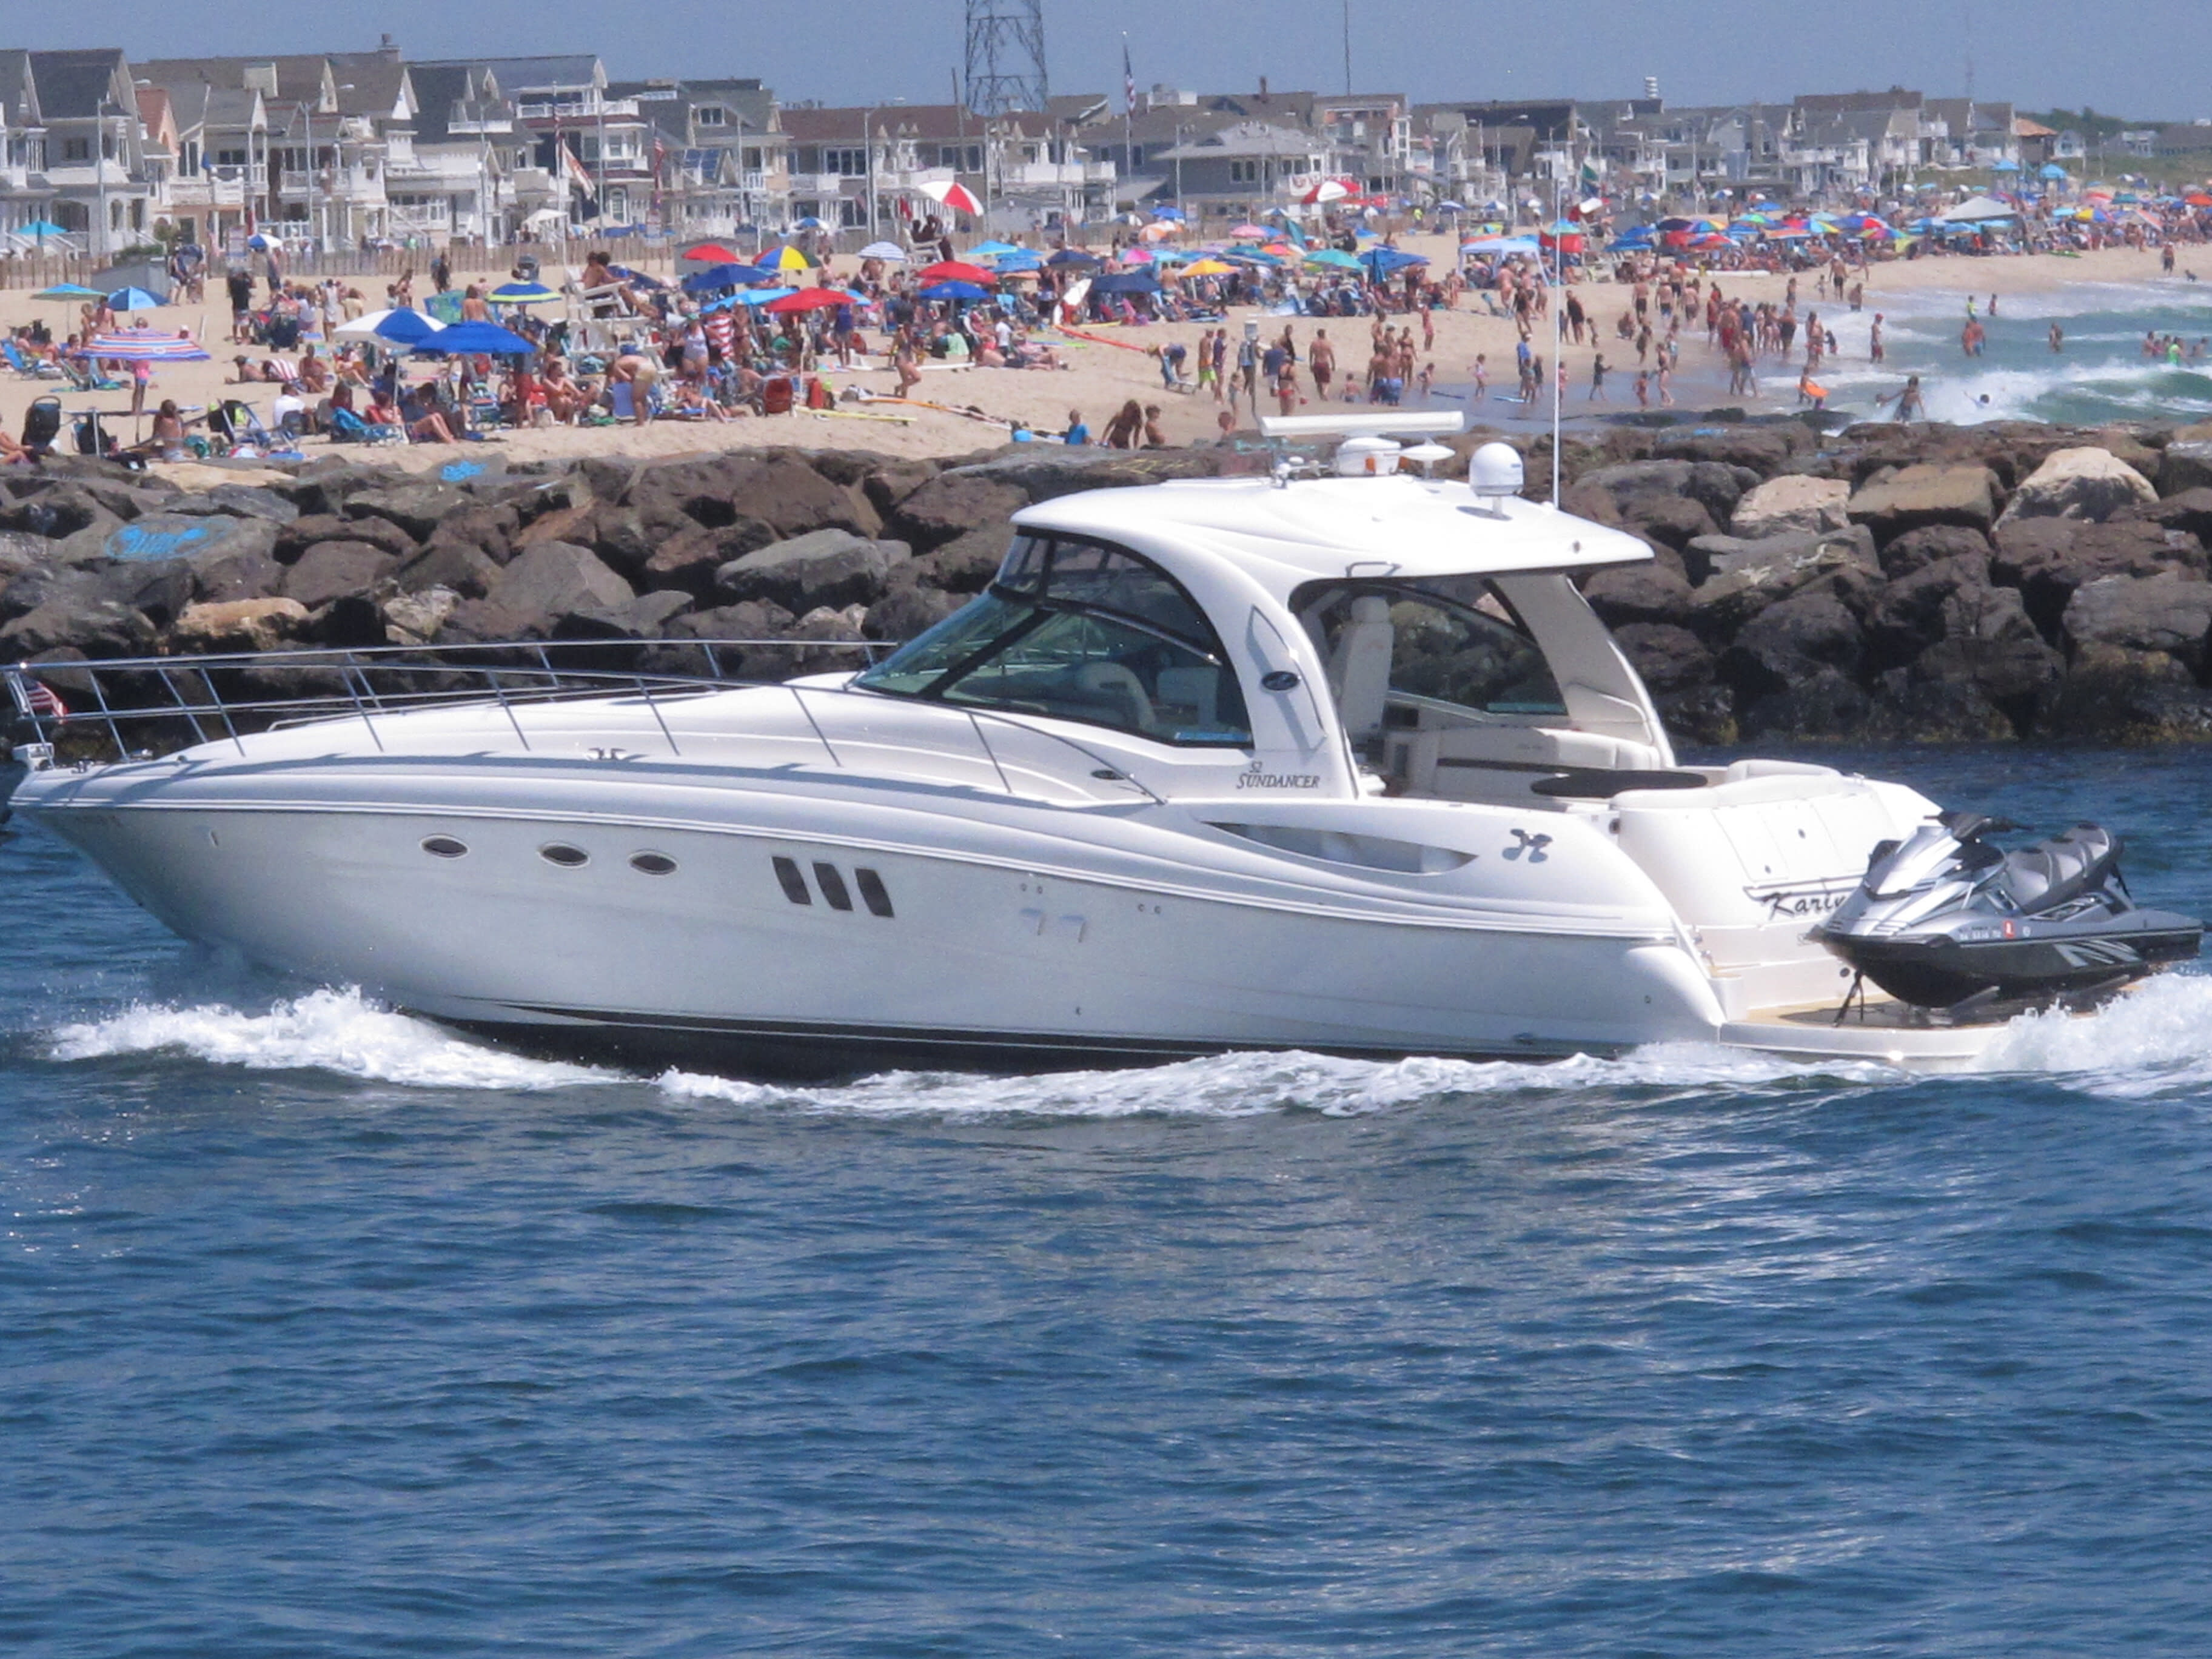 A yacht cruises through the Manasquan Inlet as a large crowd fills the beach in Manasquan, N.J. on June 28, 2020. With large crowds expected at the Jersey Shore for the July Fourth weekend, some are worried that a failure to heed mask-wearing and social distancing protocols could accelerate the spread of the coronavirus. (AP Photo/Wayne Parry)